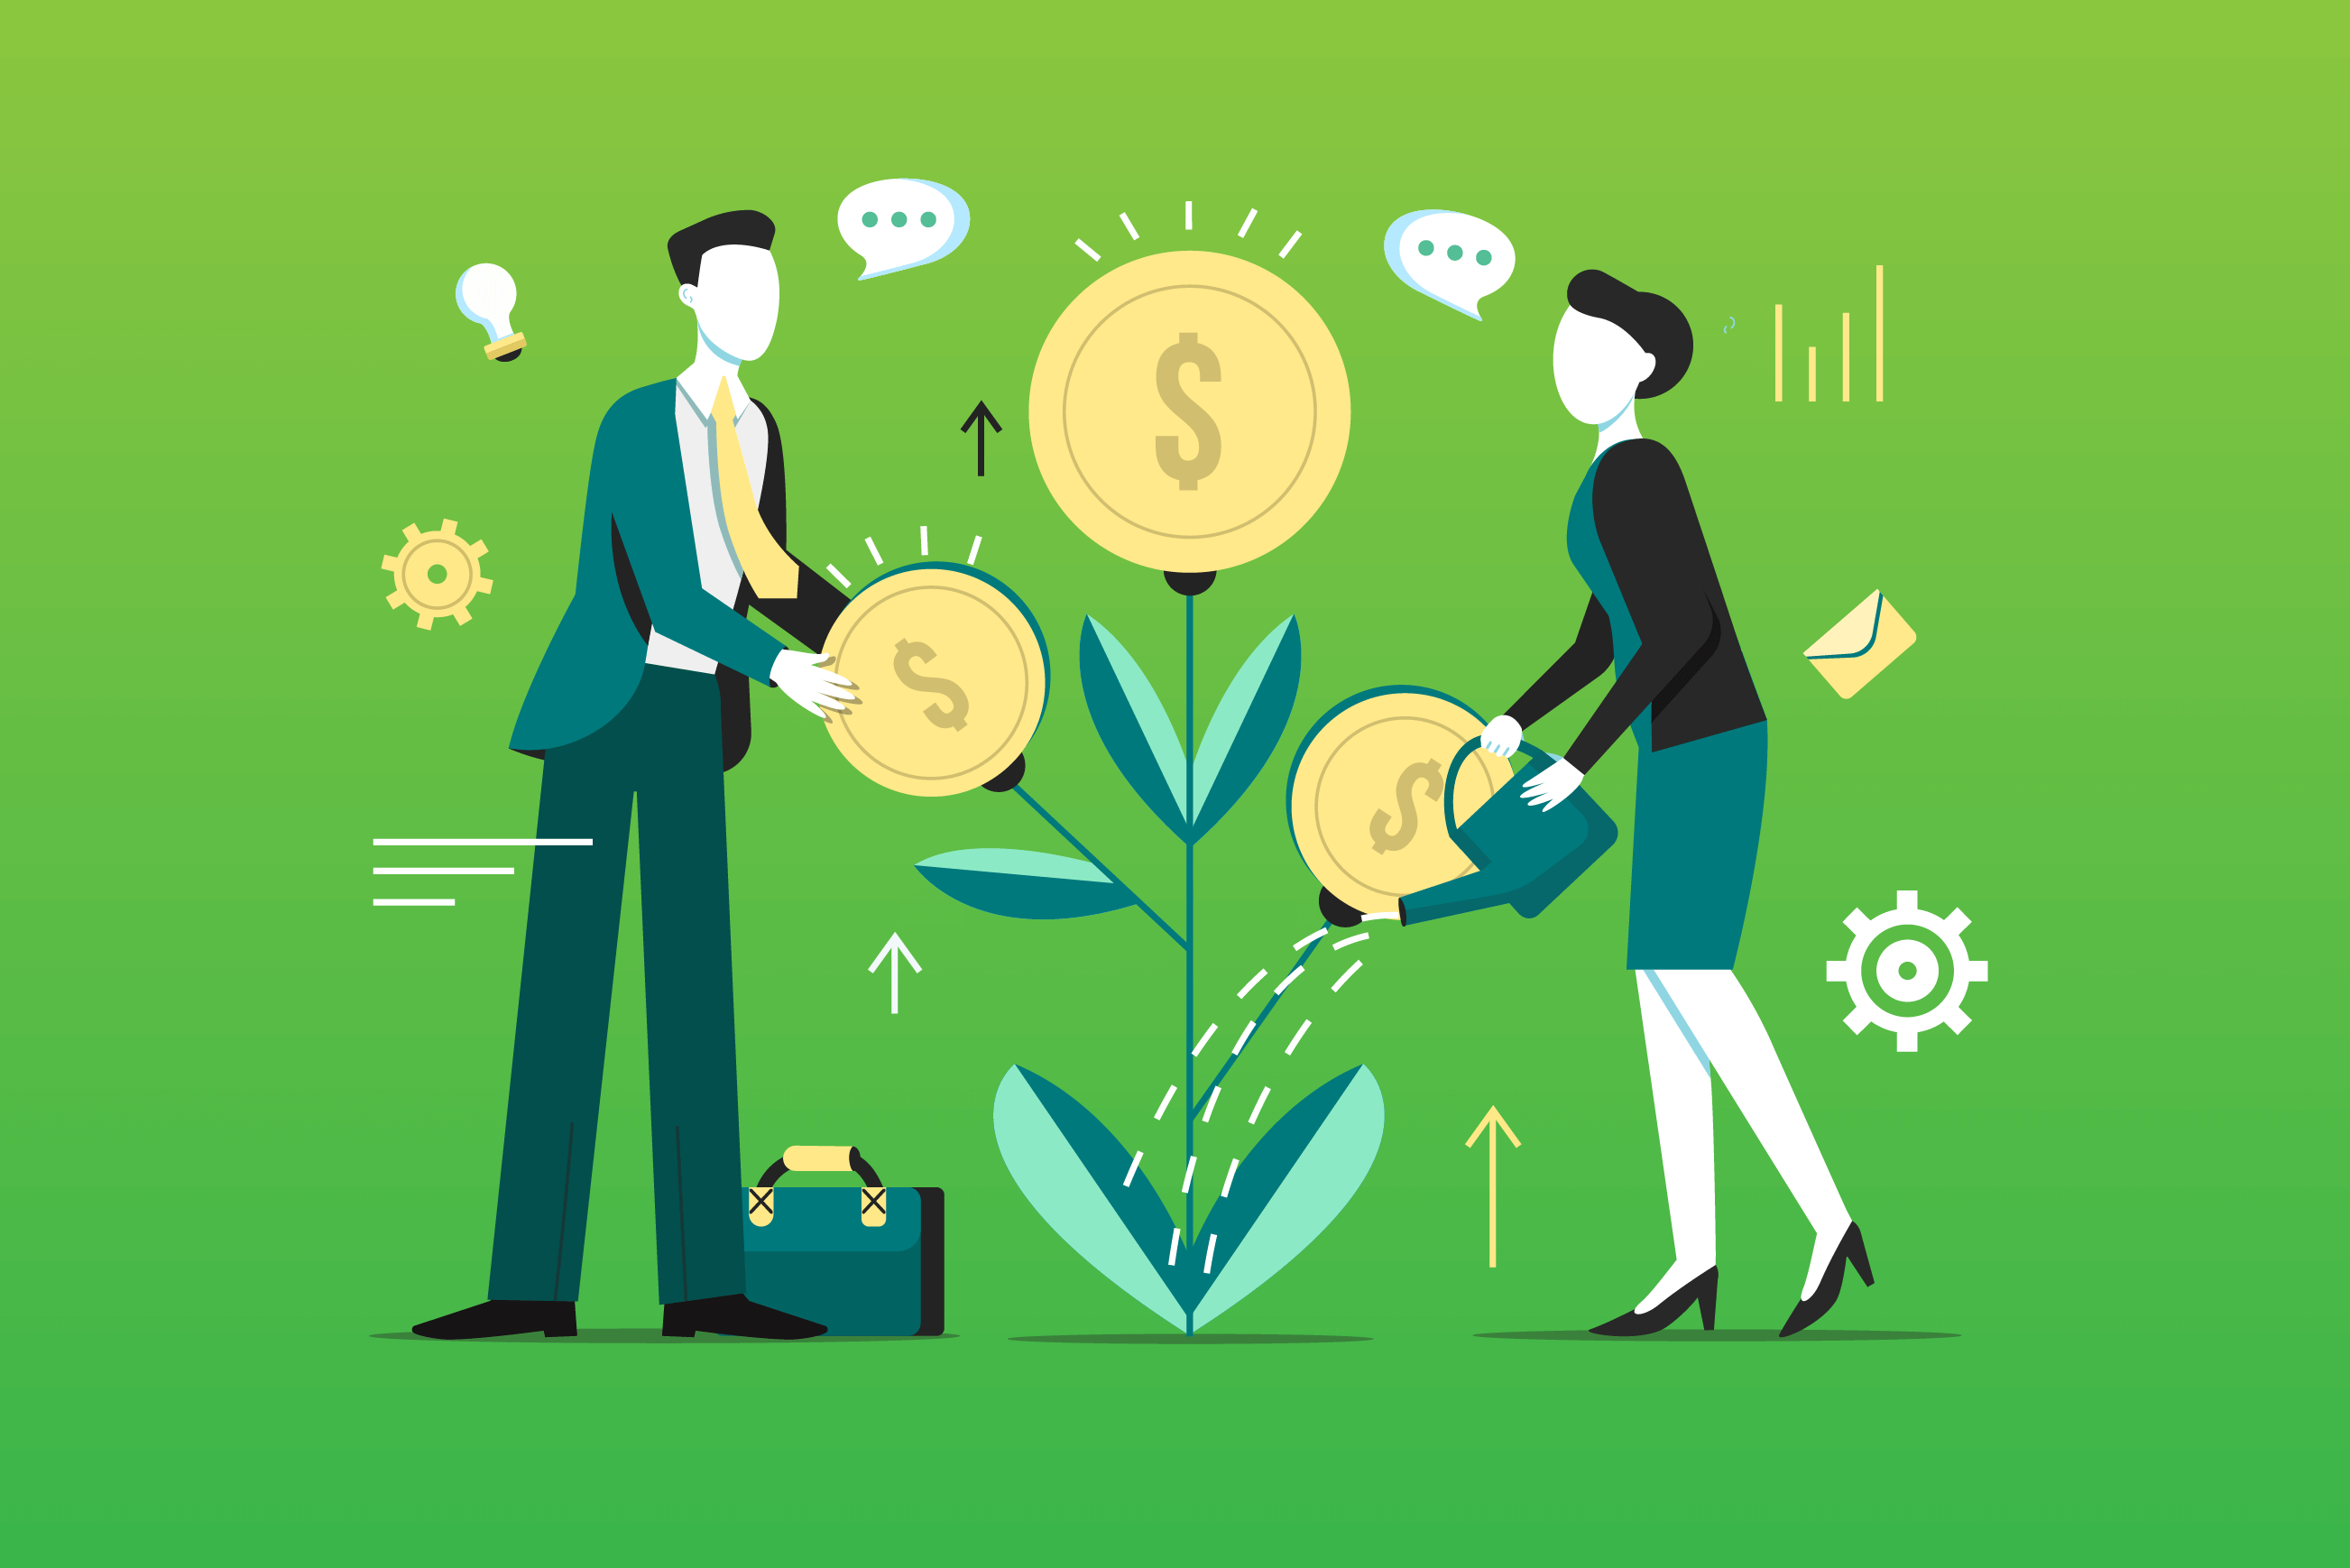 How Can A Working Capital Help Your Business Grow?